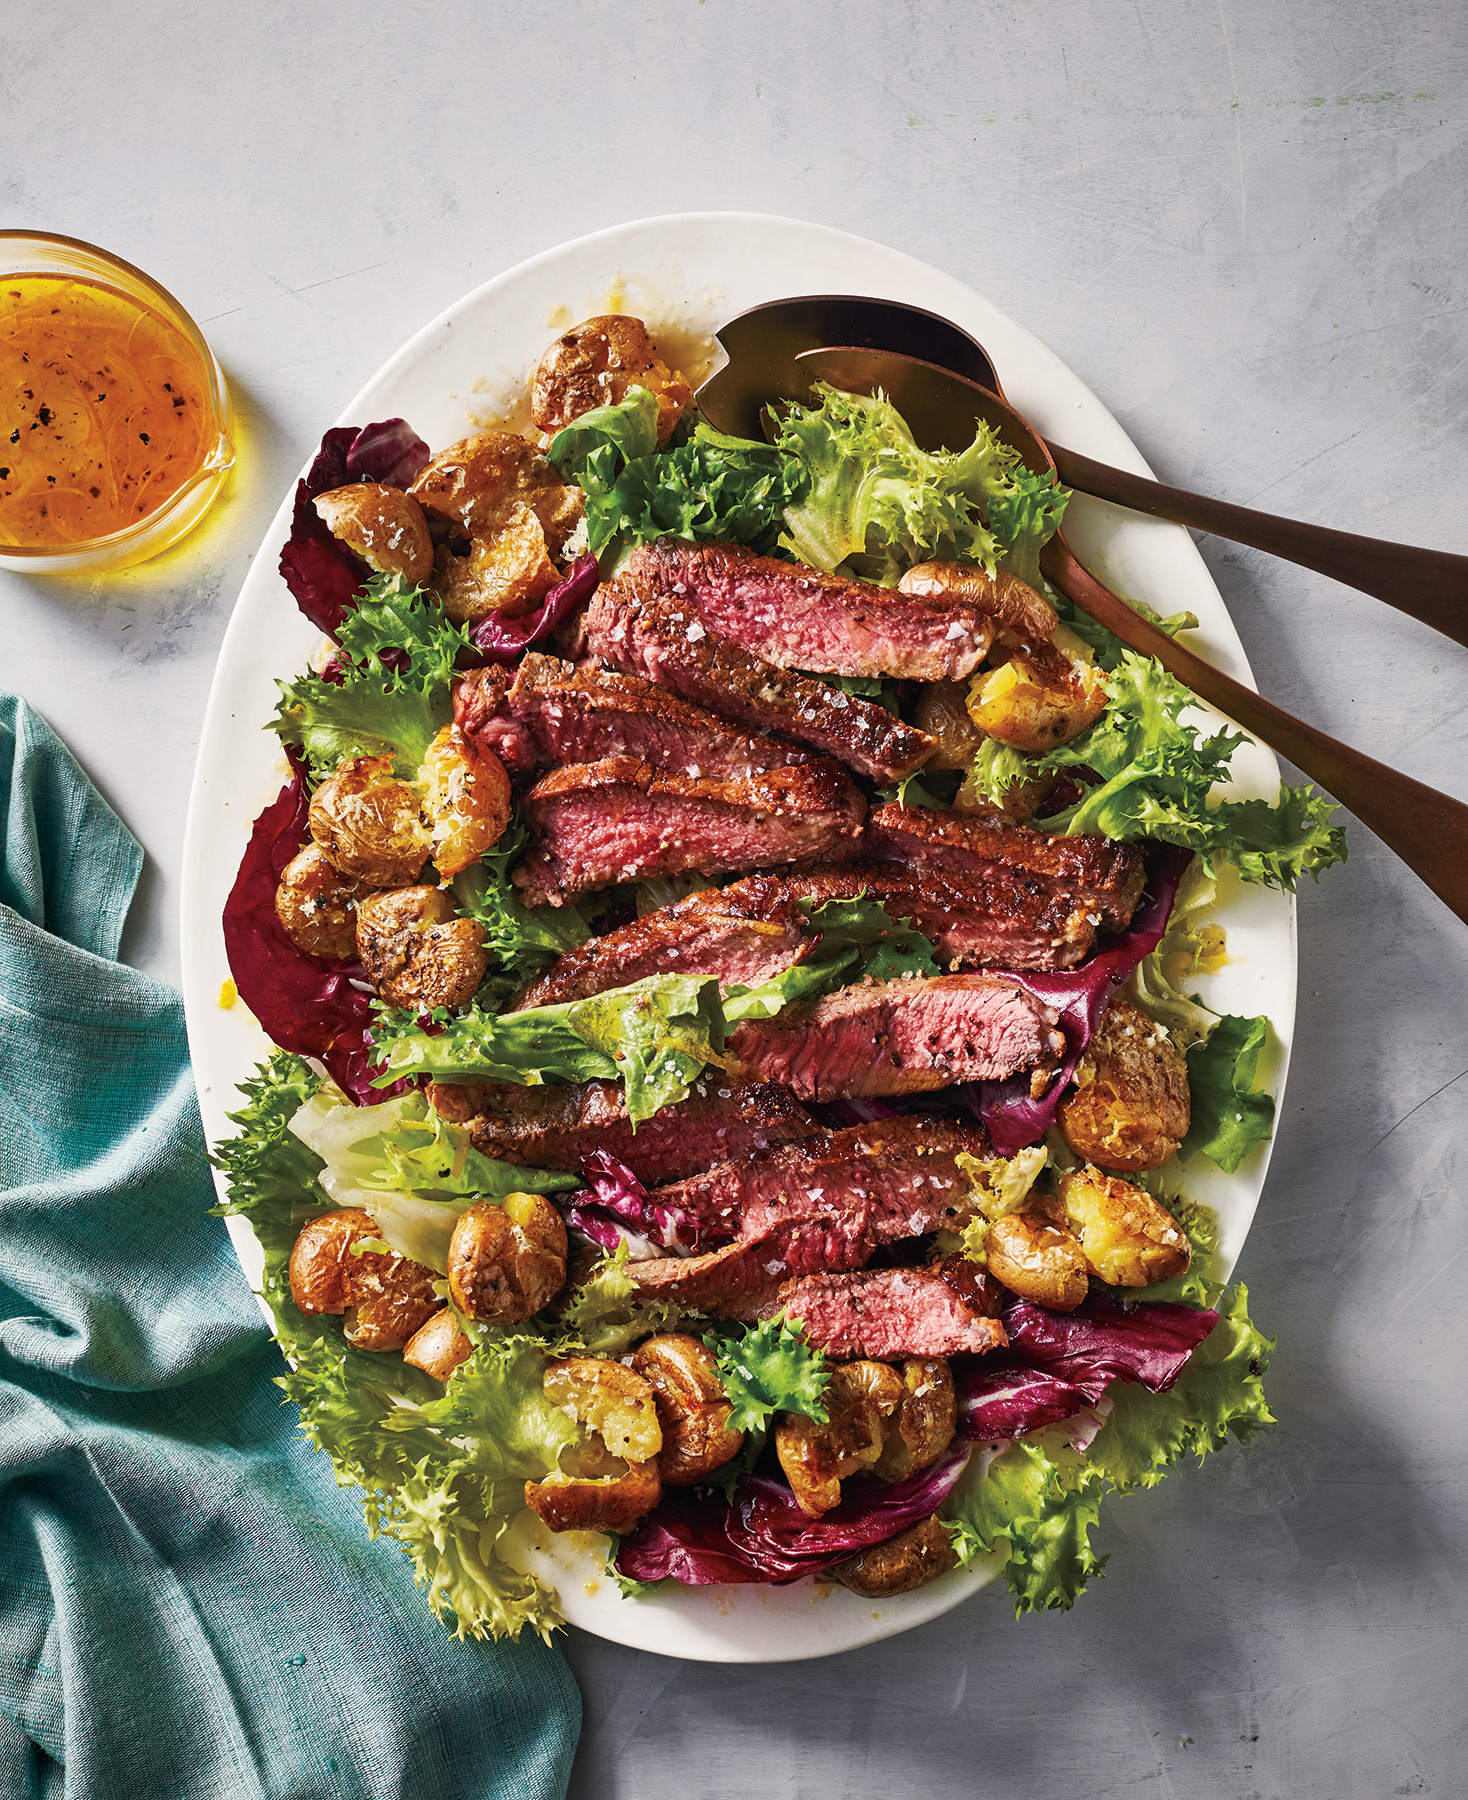 Steak Salad With Crispy Potatoes and Lemon-Parmesan Dressing